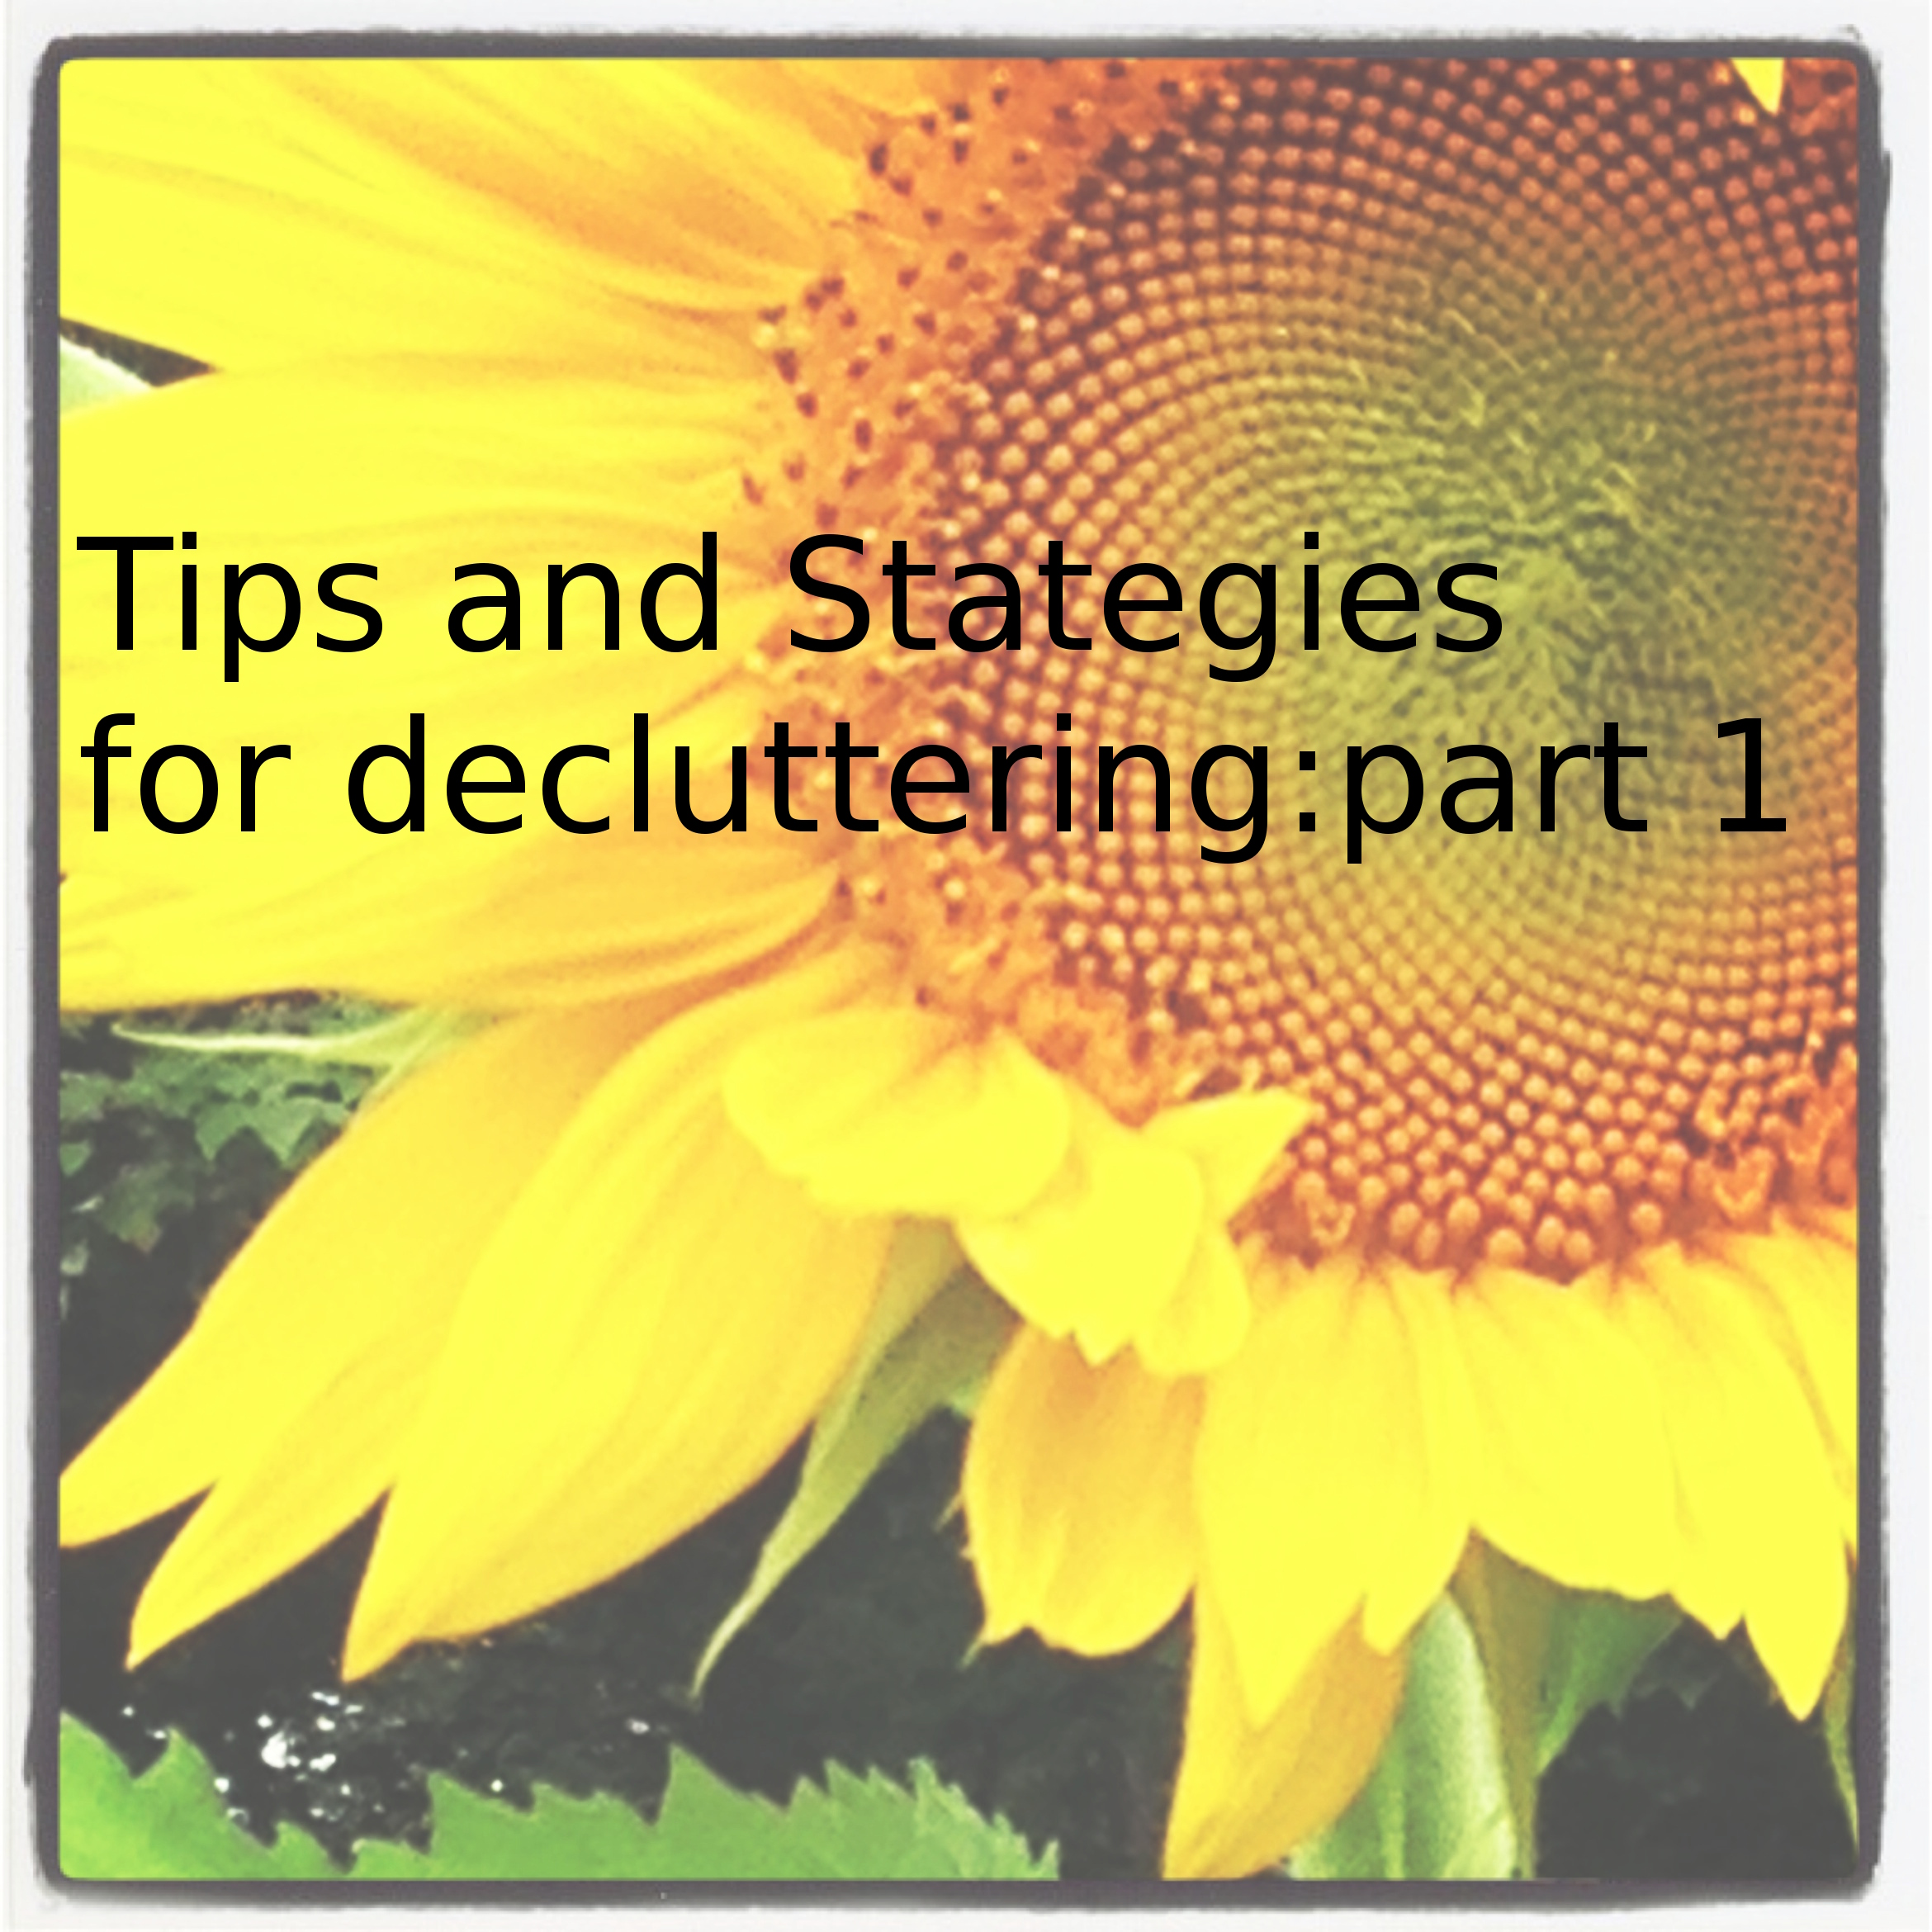 Tips and strategies for decluttering and downsizing: Part One